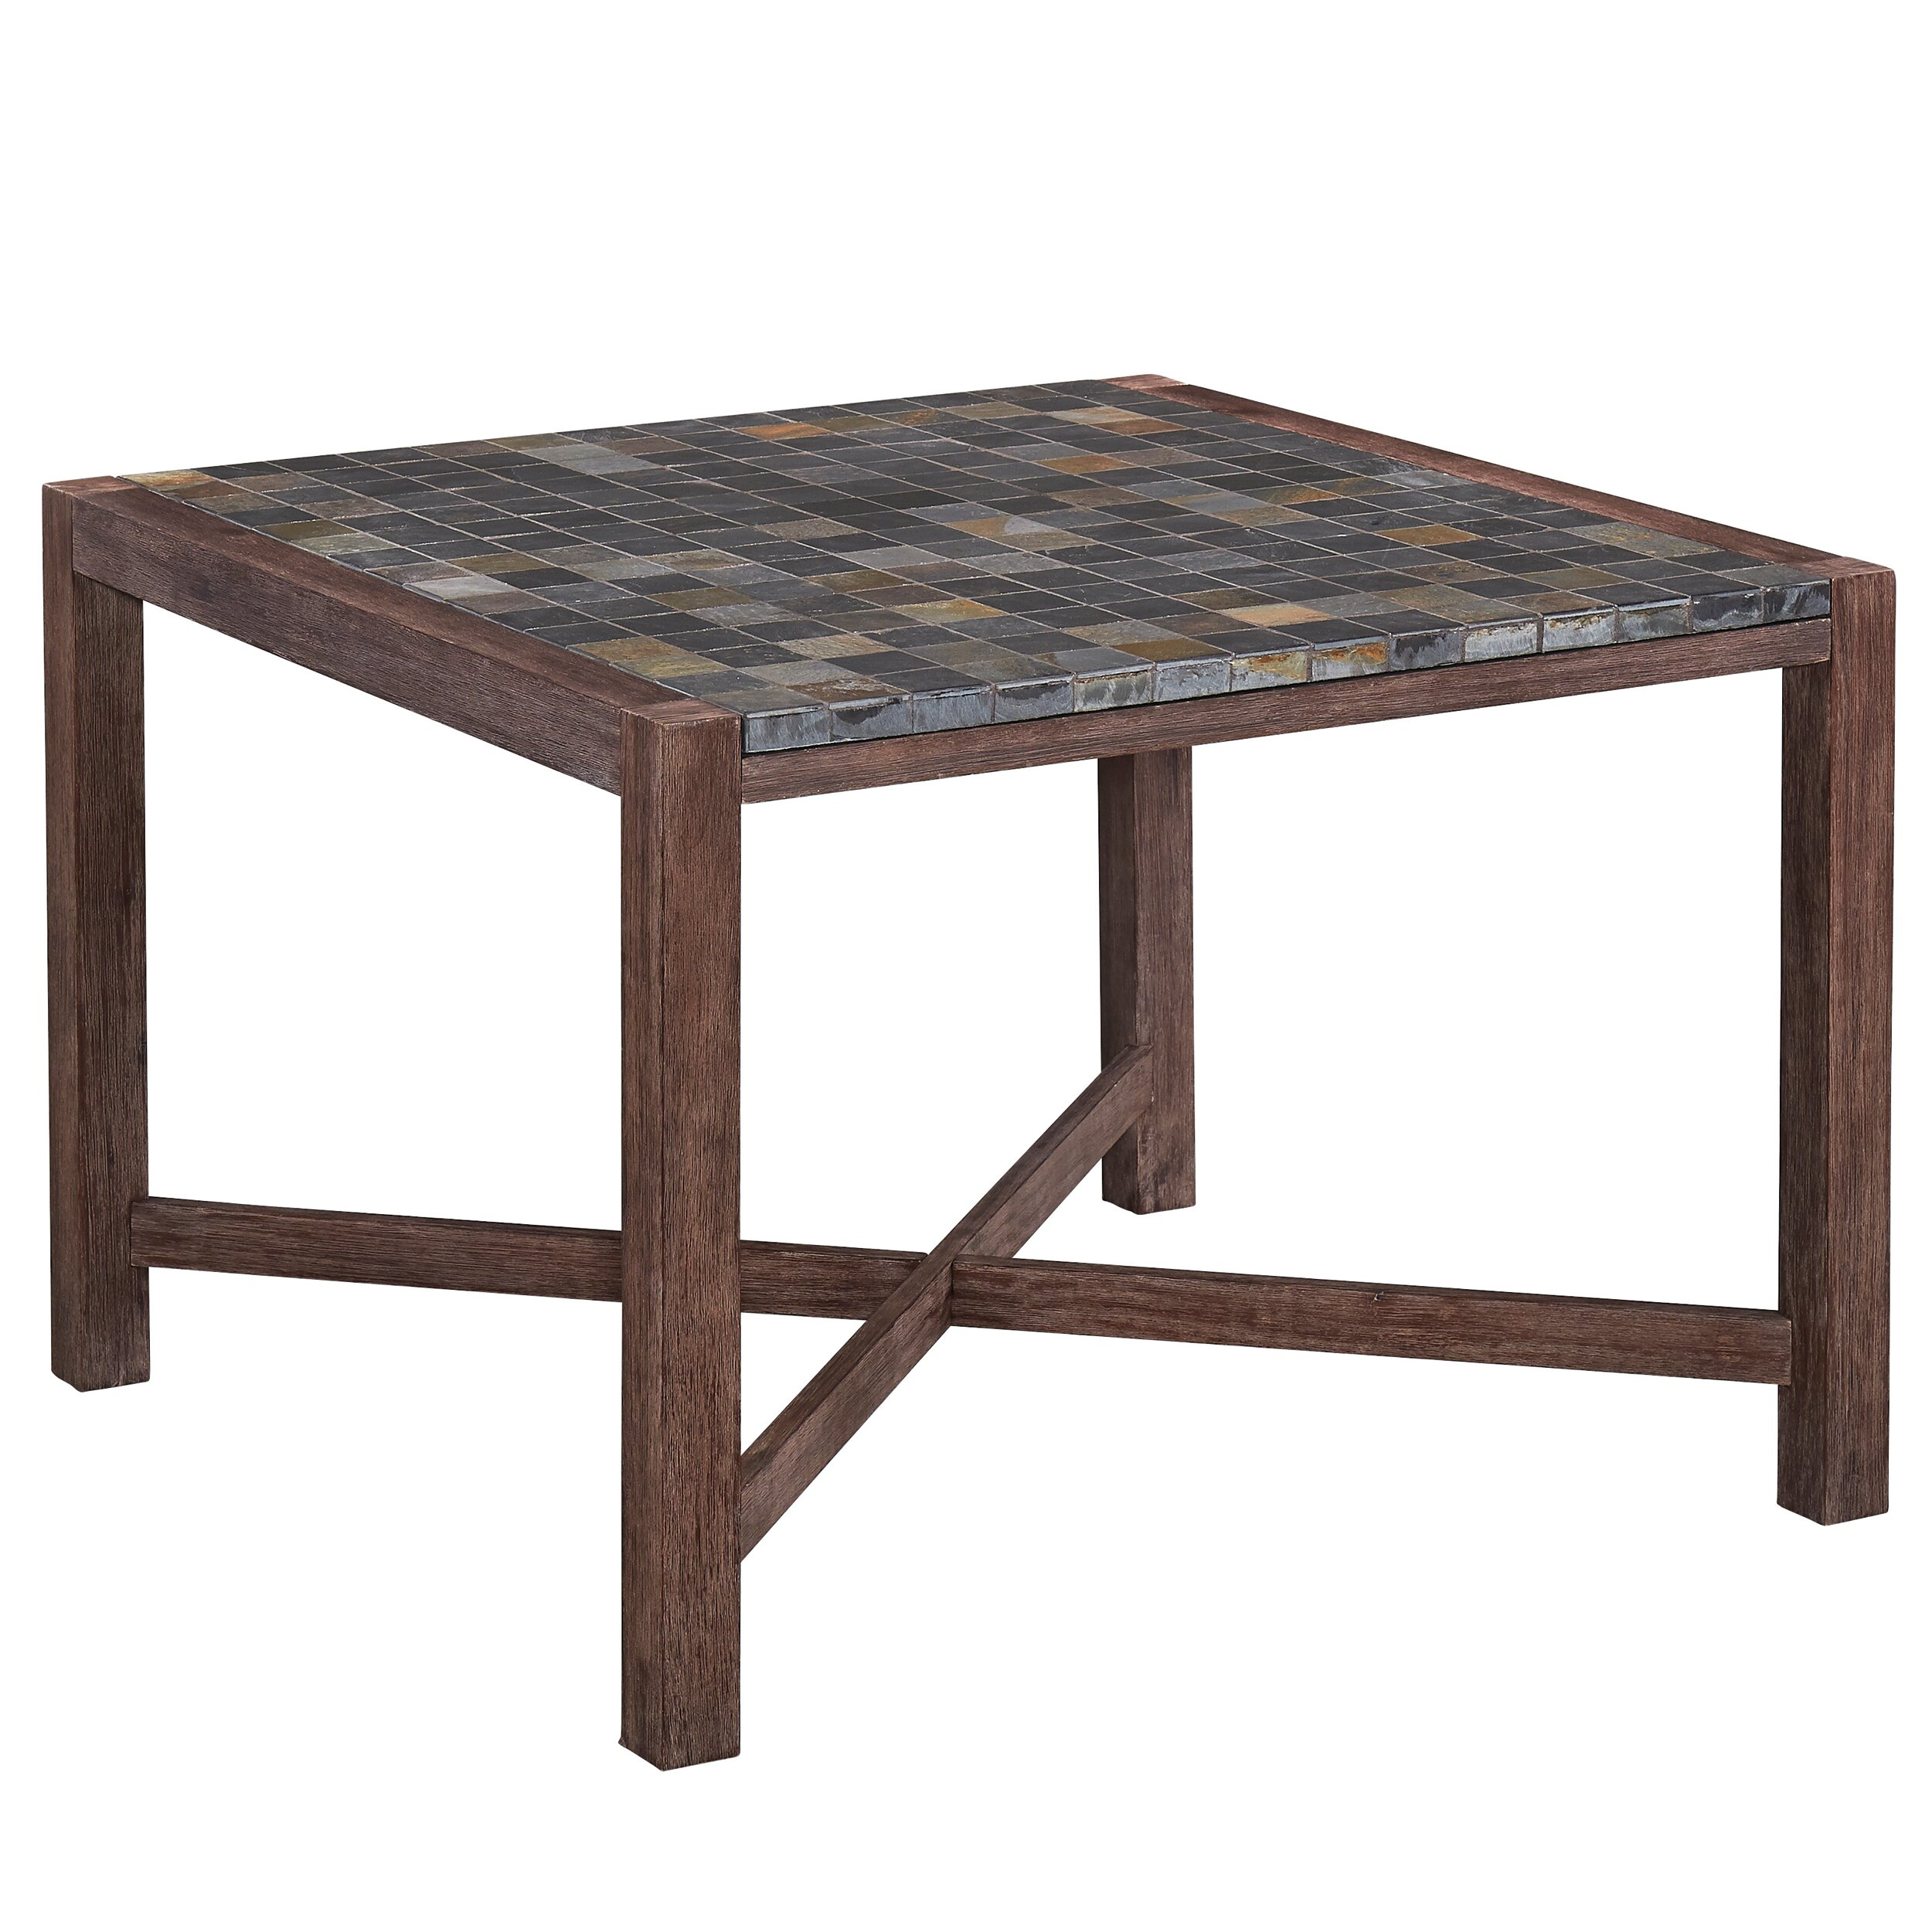 Home styles morocco square dining table wayfair for Dining table styles